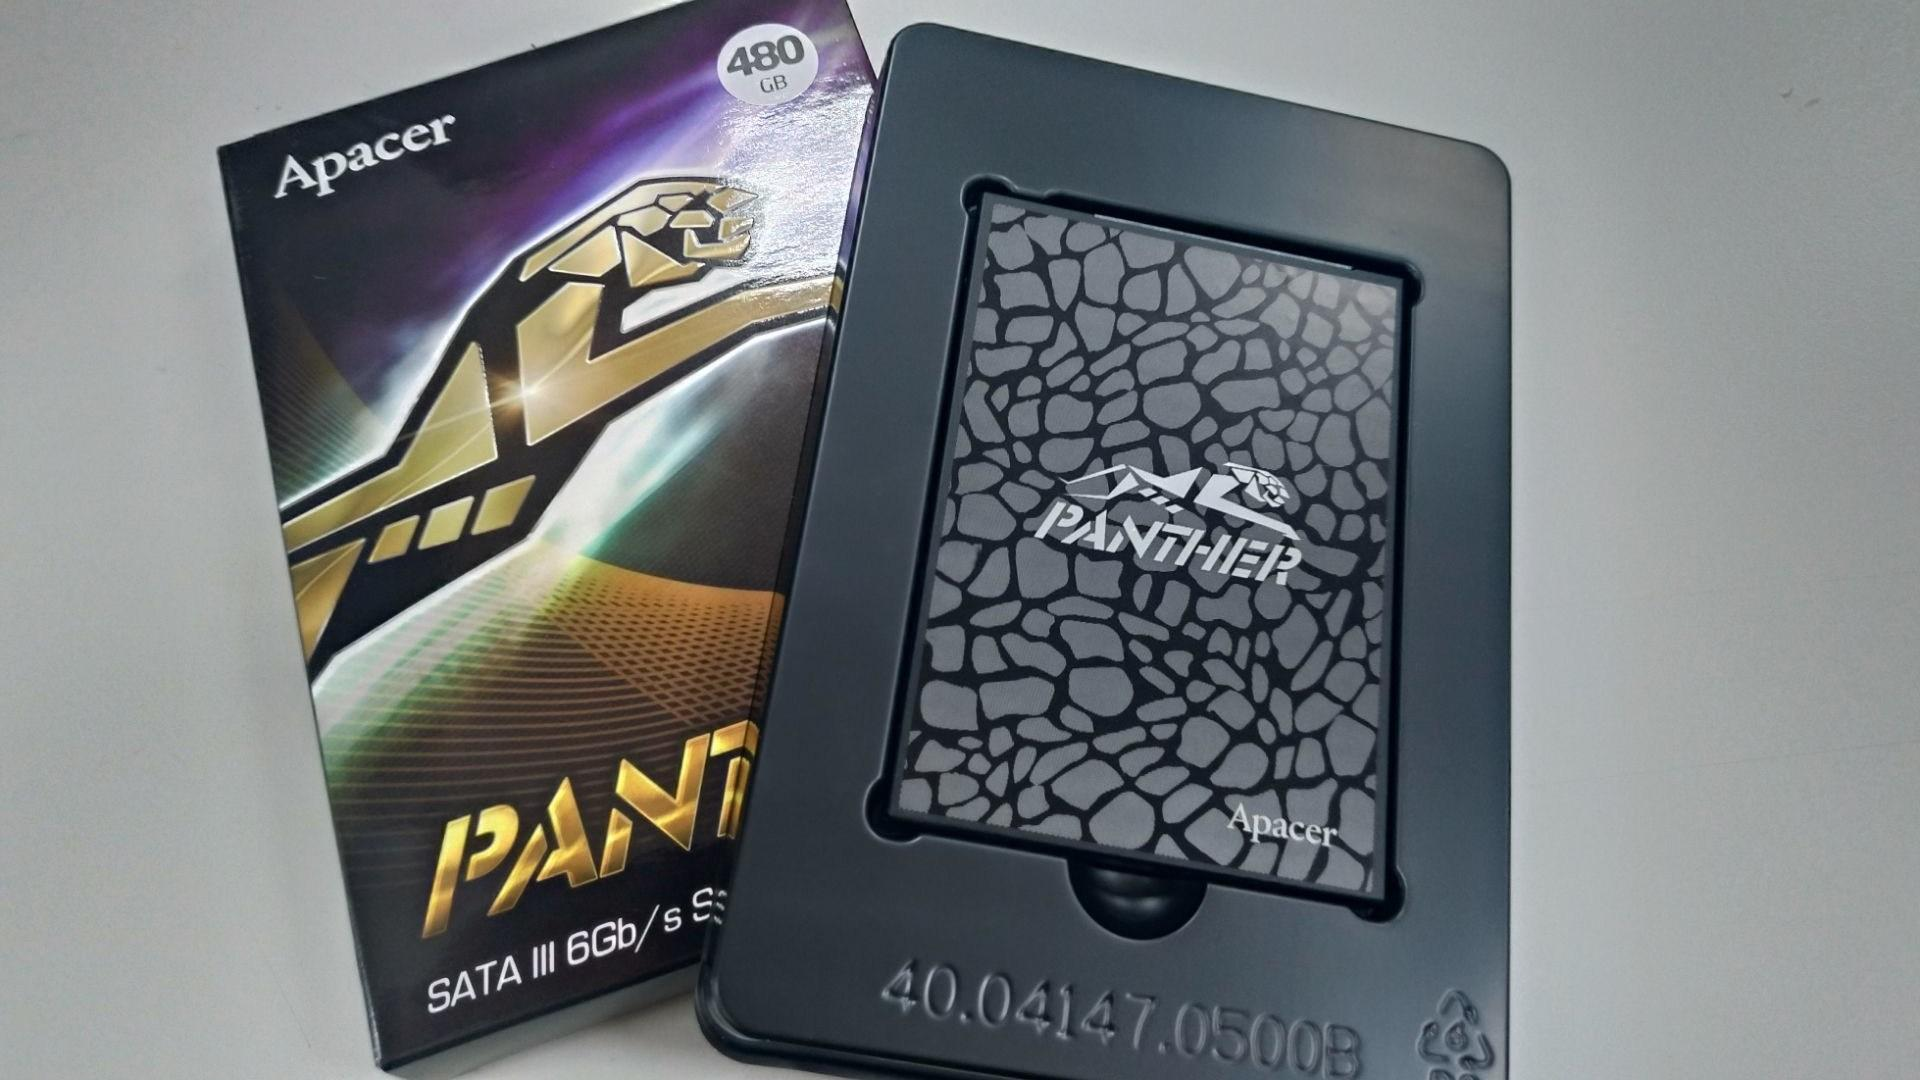 宇瞻AS330 PANTHER SSD、PANTHER DDR4 RGB開箱 - XFastest - 6.JPG